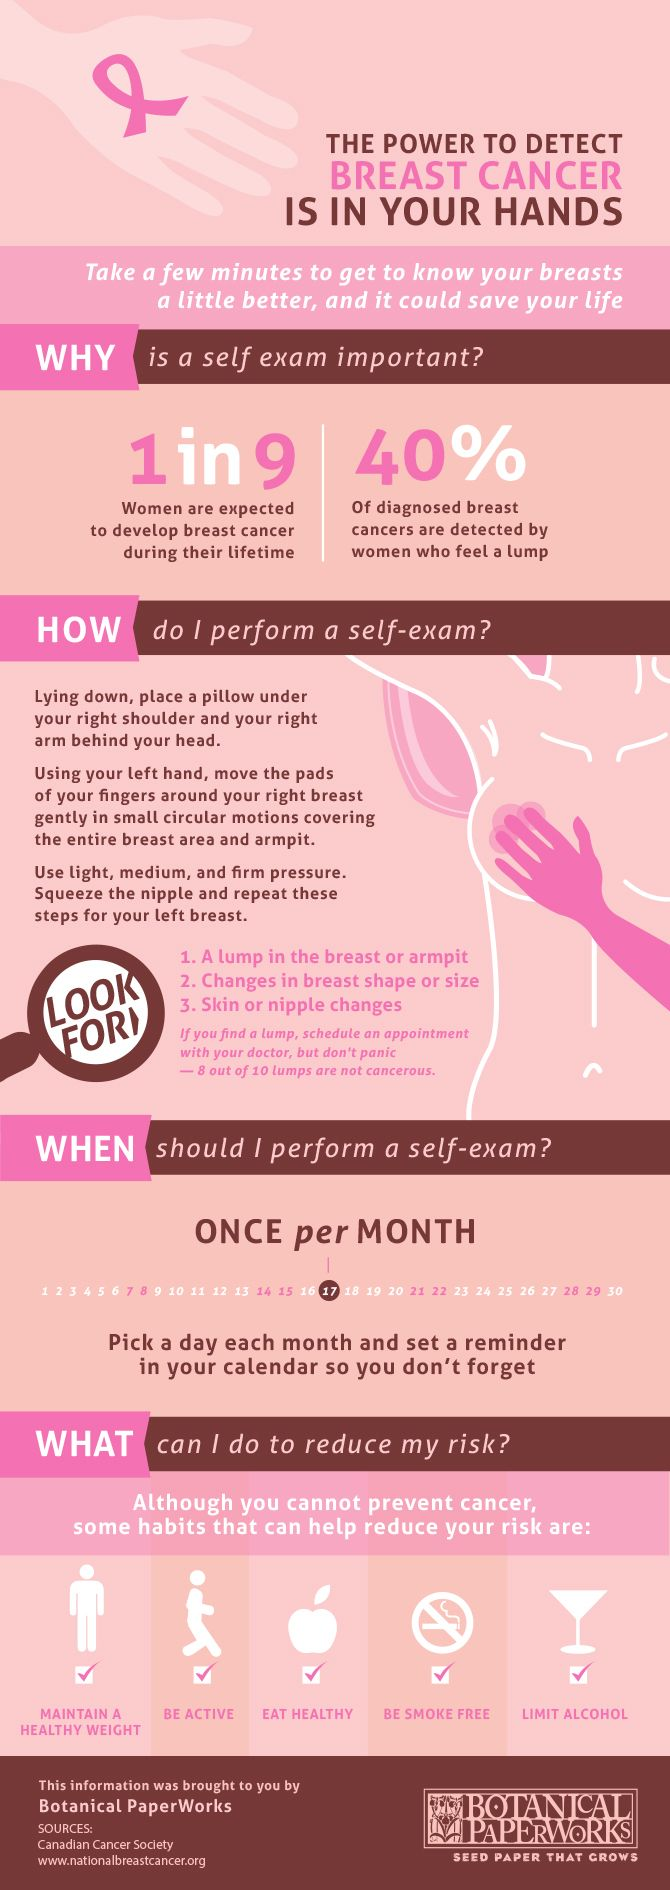 October is Breast Cancer Awareness Month, make sure you are in the know about your breast health!: